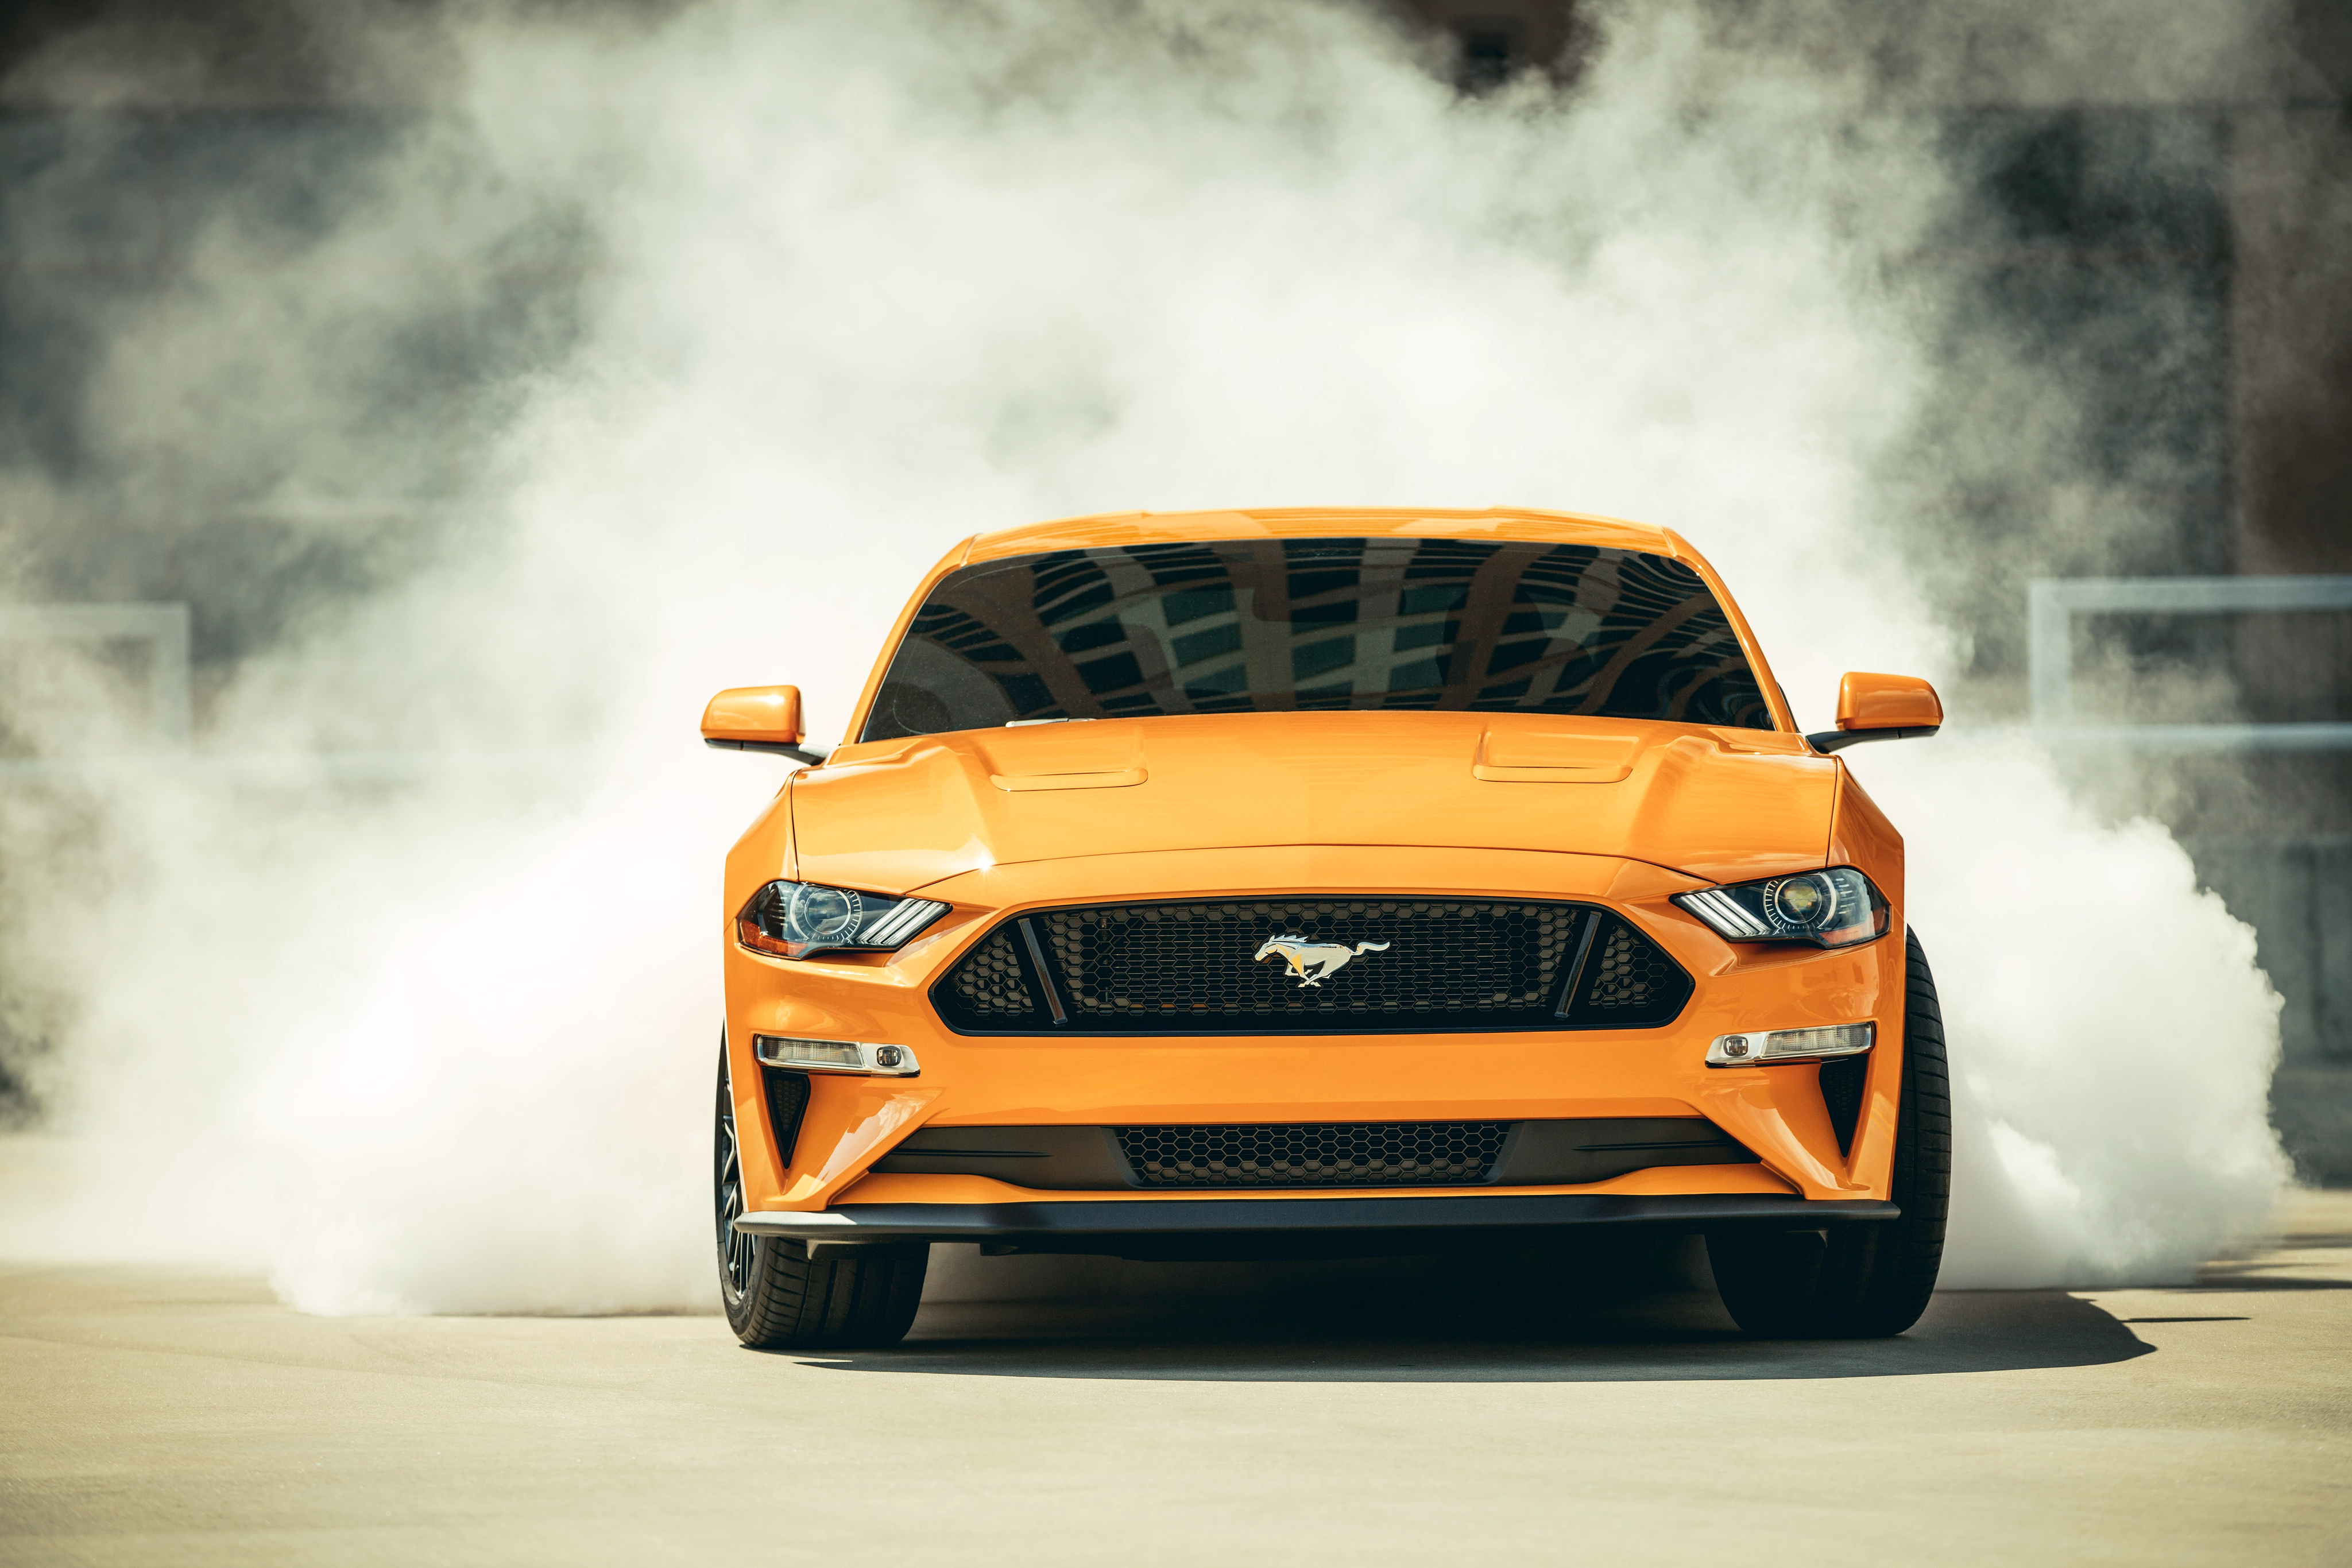 2018 Mustang Wallpaper >> 2018 Ford Mustang Gt Fastback Front Hd Cars 4k Wallpapers Images